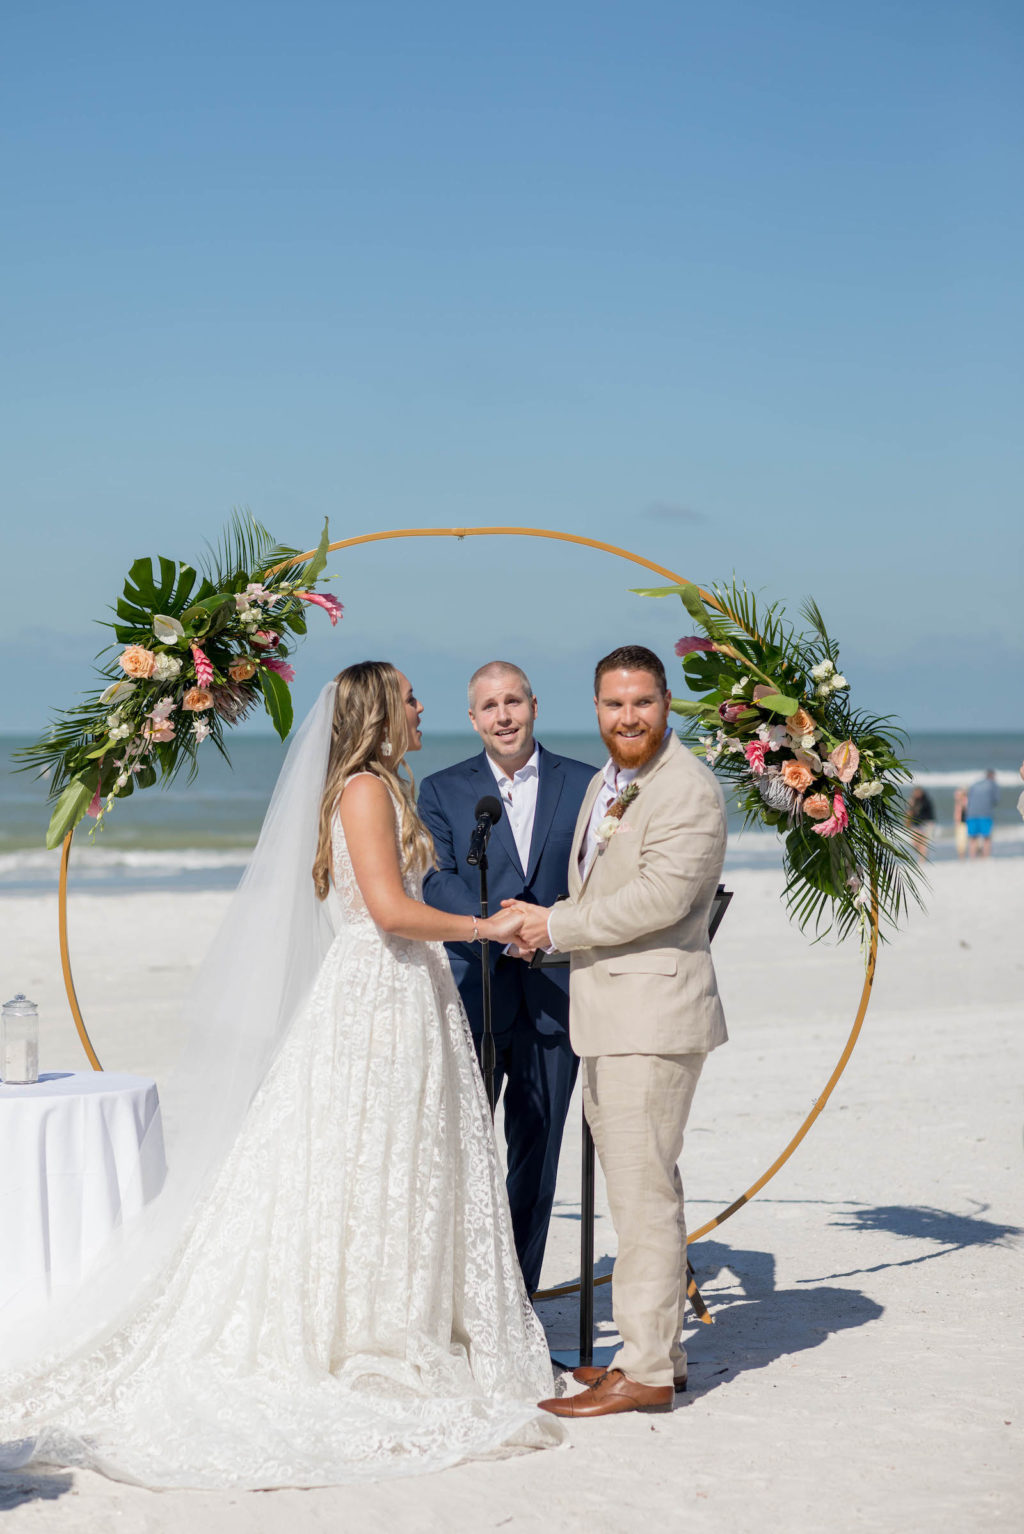 Bride and Groom Exchanging Vows during Outdoor Beach Wedding at St. Pete Beach Wedding Venue The Don CeSar Pink Palace | Monique Lhuillier Designer Wedding Dress A Line Ballgown Lace Bridal Gown | Groom Wearing Casual Khaki Suite | Beach Wedding Round Arch Floral Arrangement Spray | Tropical Wedding Flowers with Monstera Leaf Greenery, Peach Roses, White Anthurium, and Pink Protea